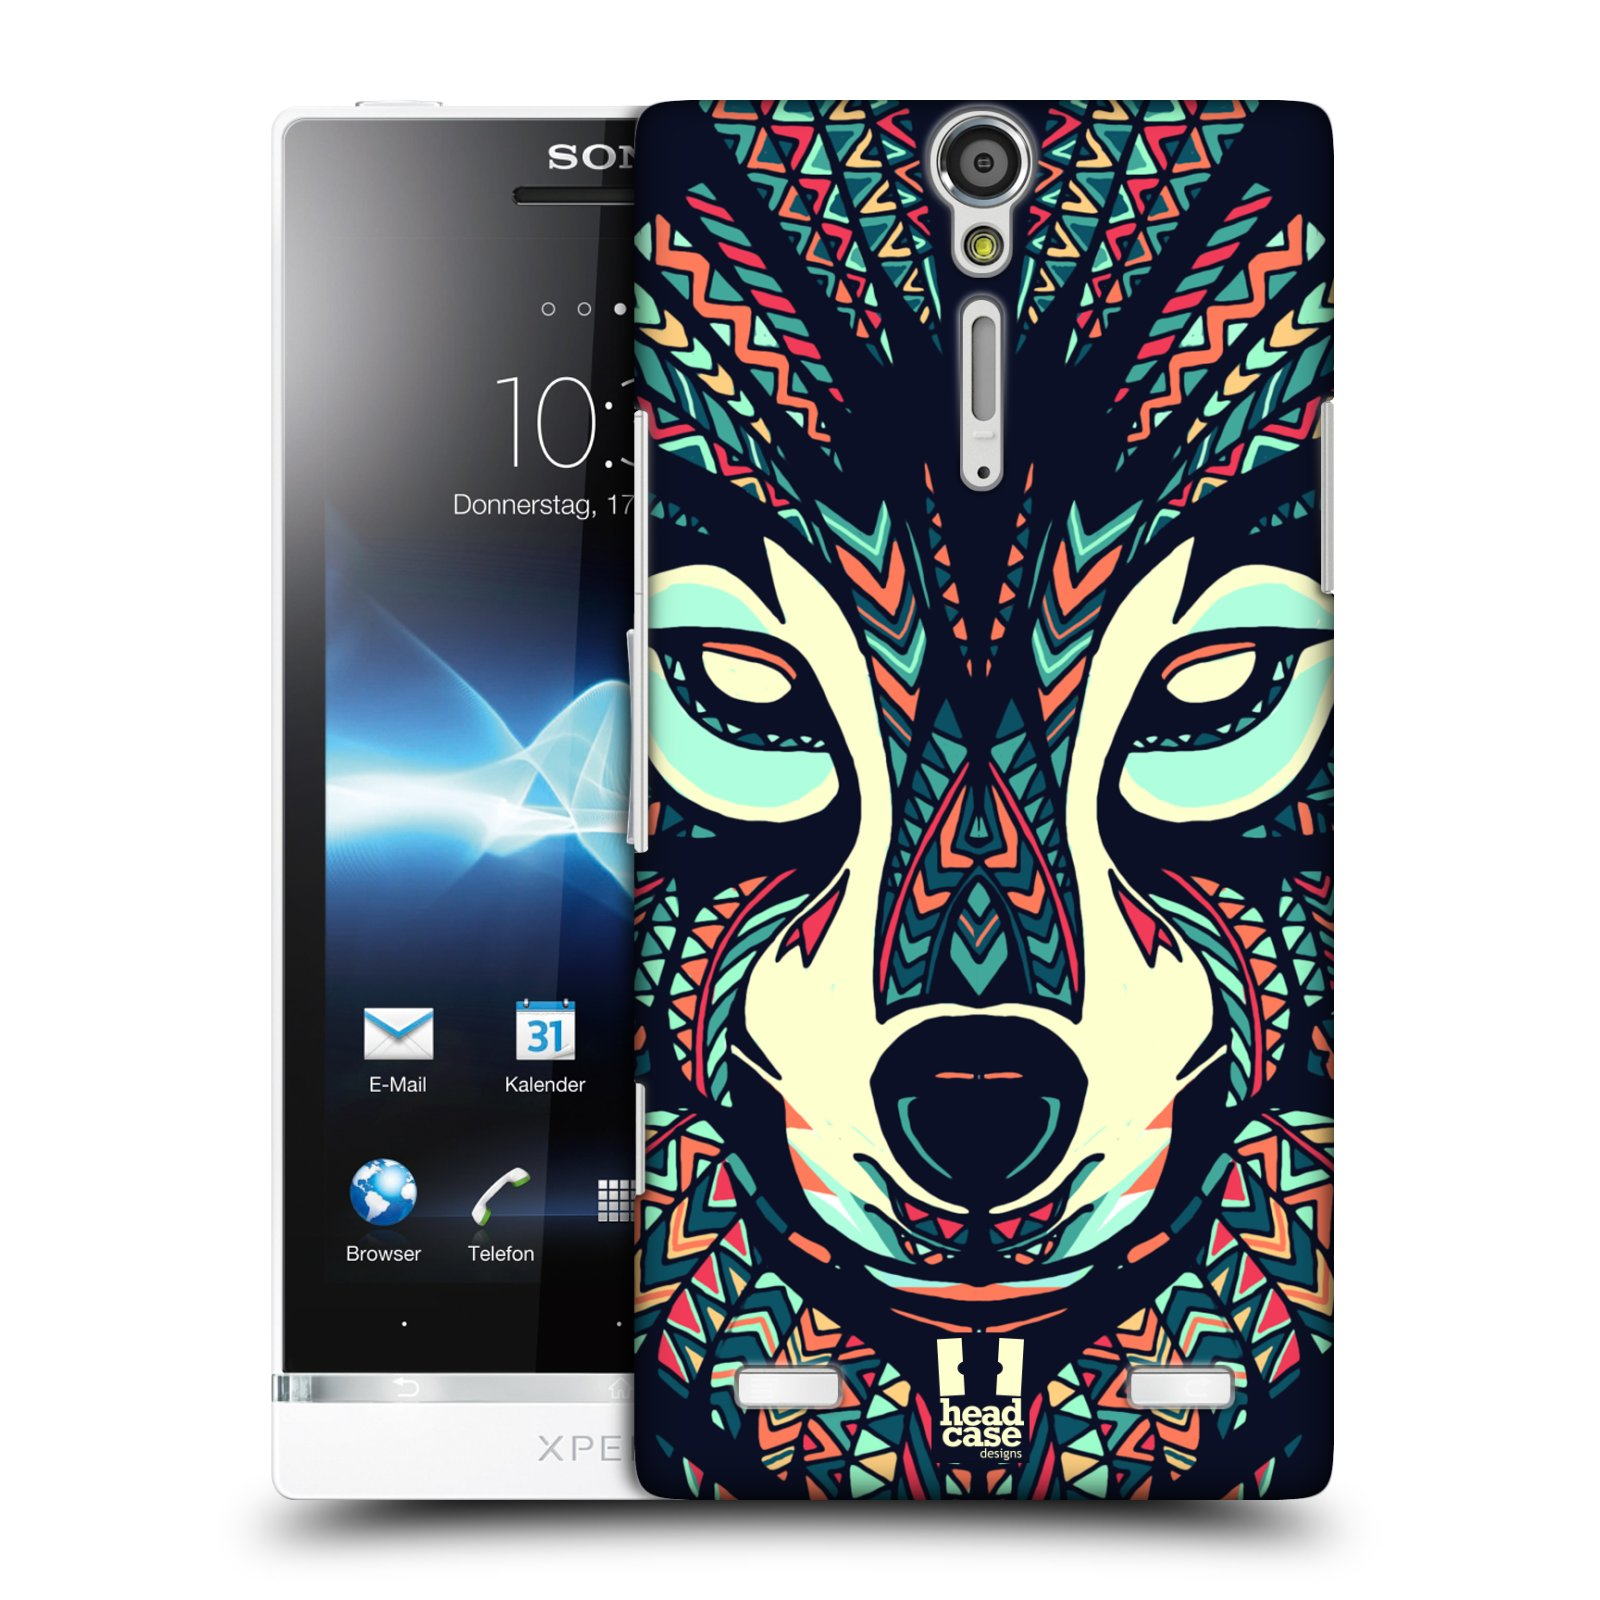 HEAD CASE DESIGNS AZTEC ANIMAL FACES 3 CASE COVER FOR SONY XPERIA S LT26i